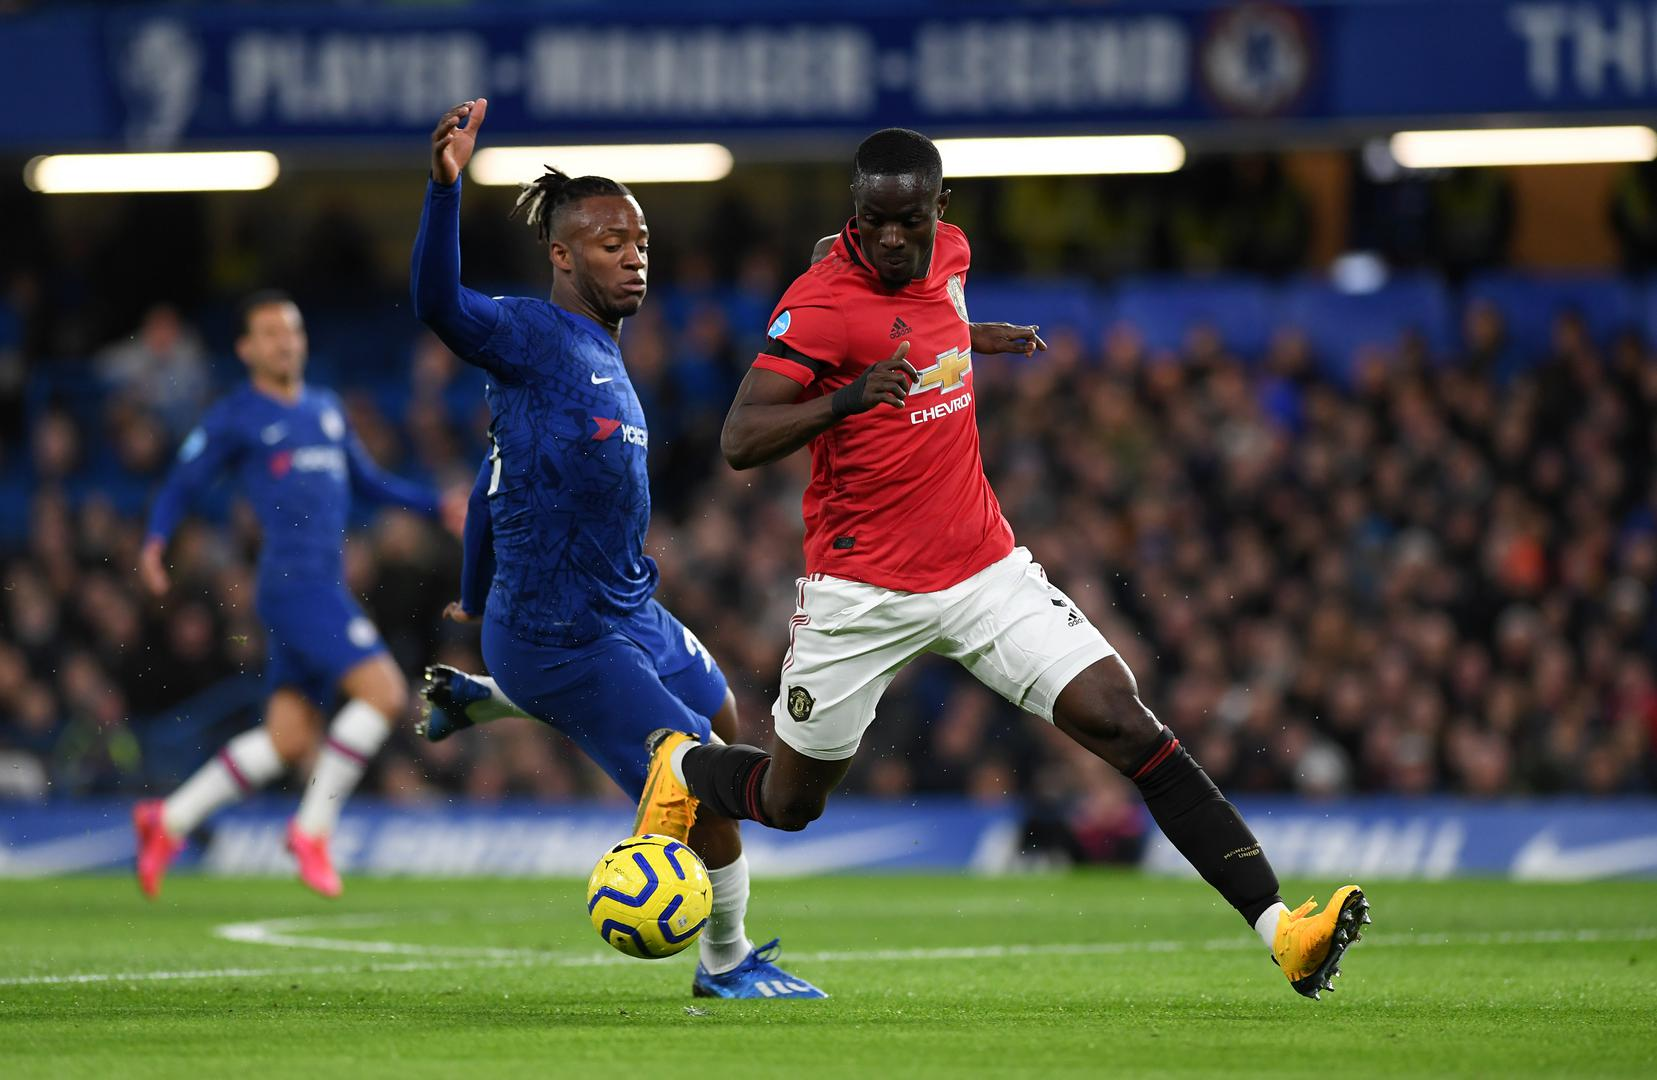 Eric Bailly makes a challenge at Stamford Bridge.